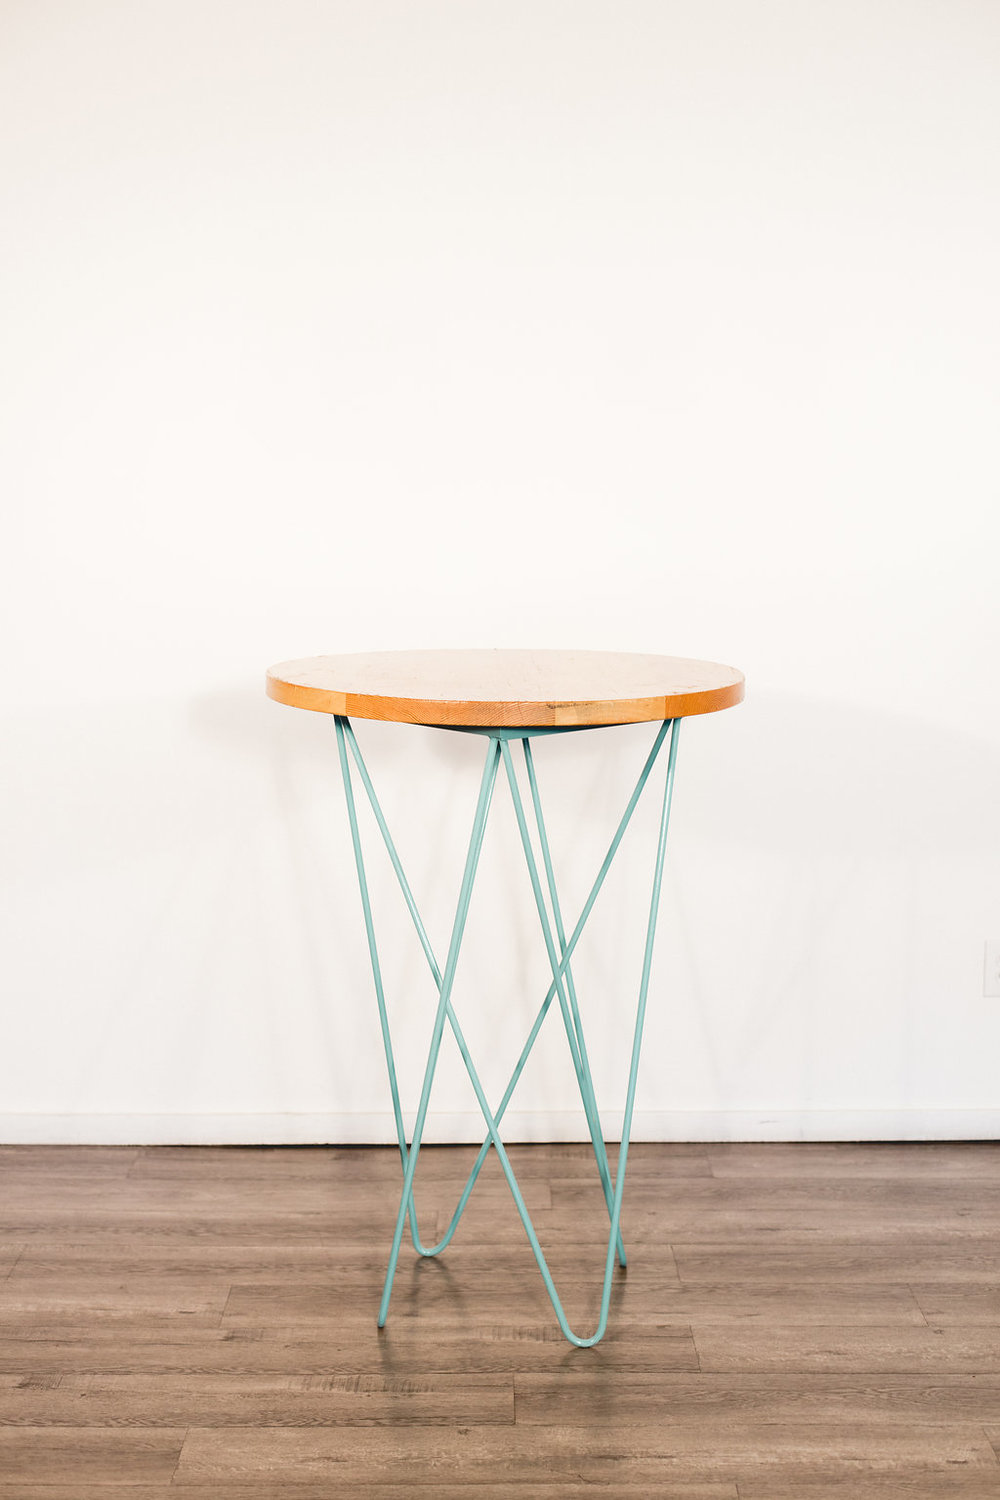 Teal Cocktail Table Quantity: 2 Price $40 Each